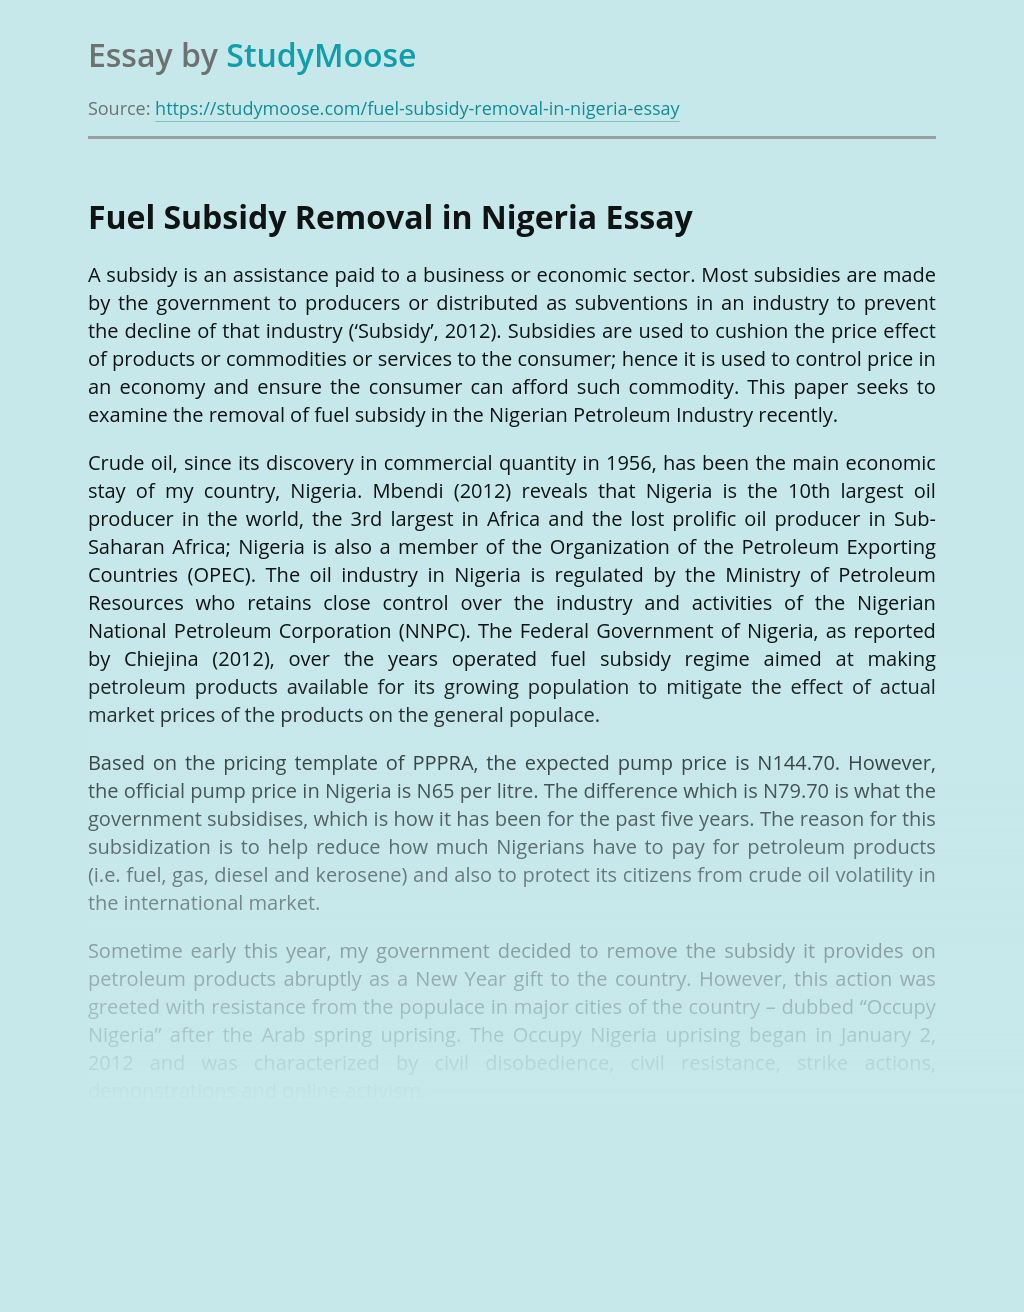 Fuel Subsidy Removal in Nigeria